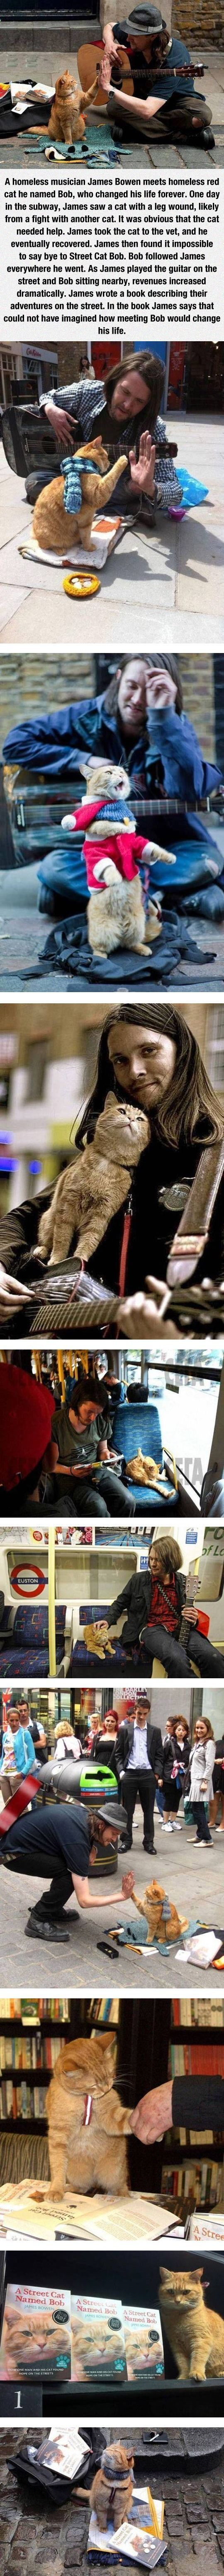 A Homeless Musician And His Cat Pictures, Photos